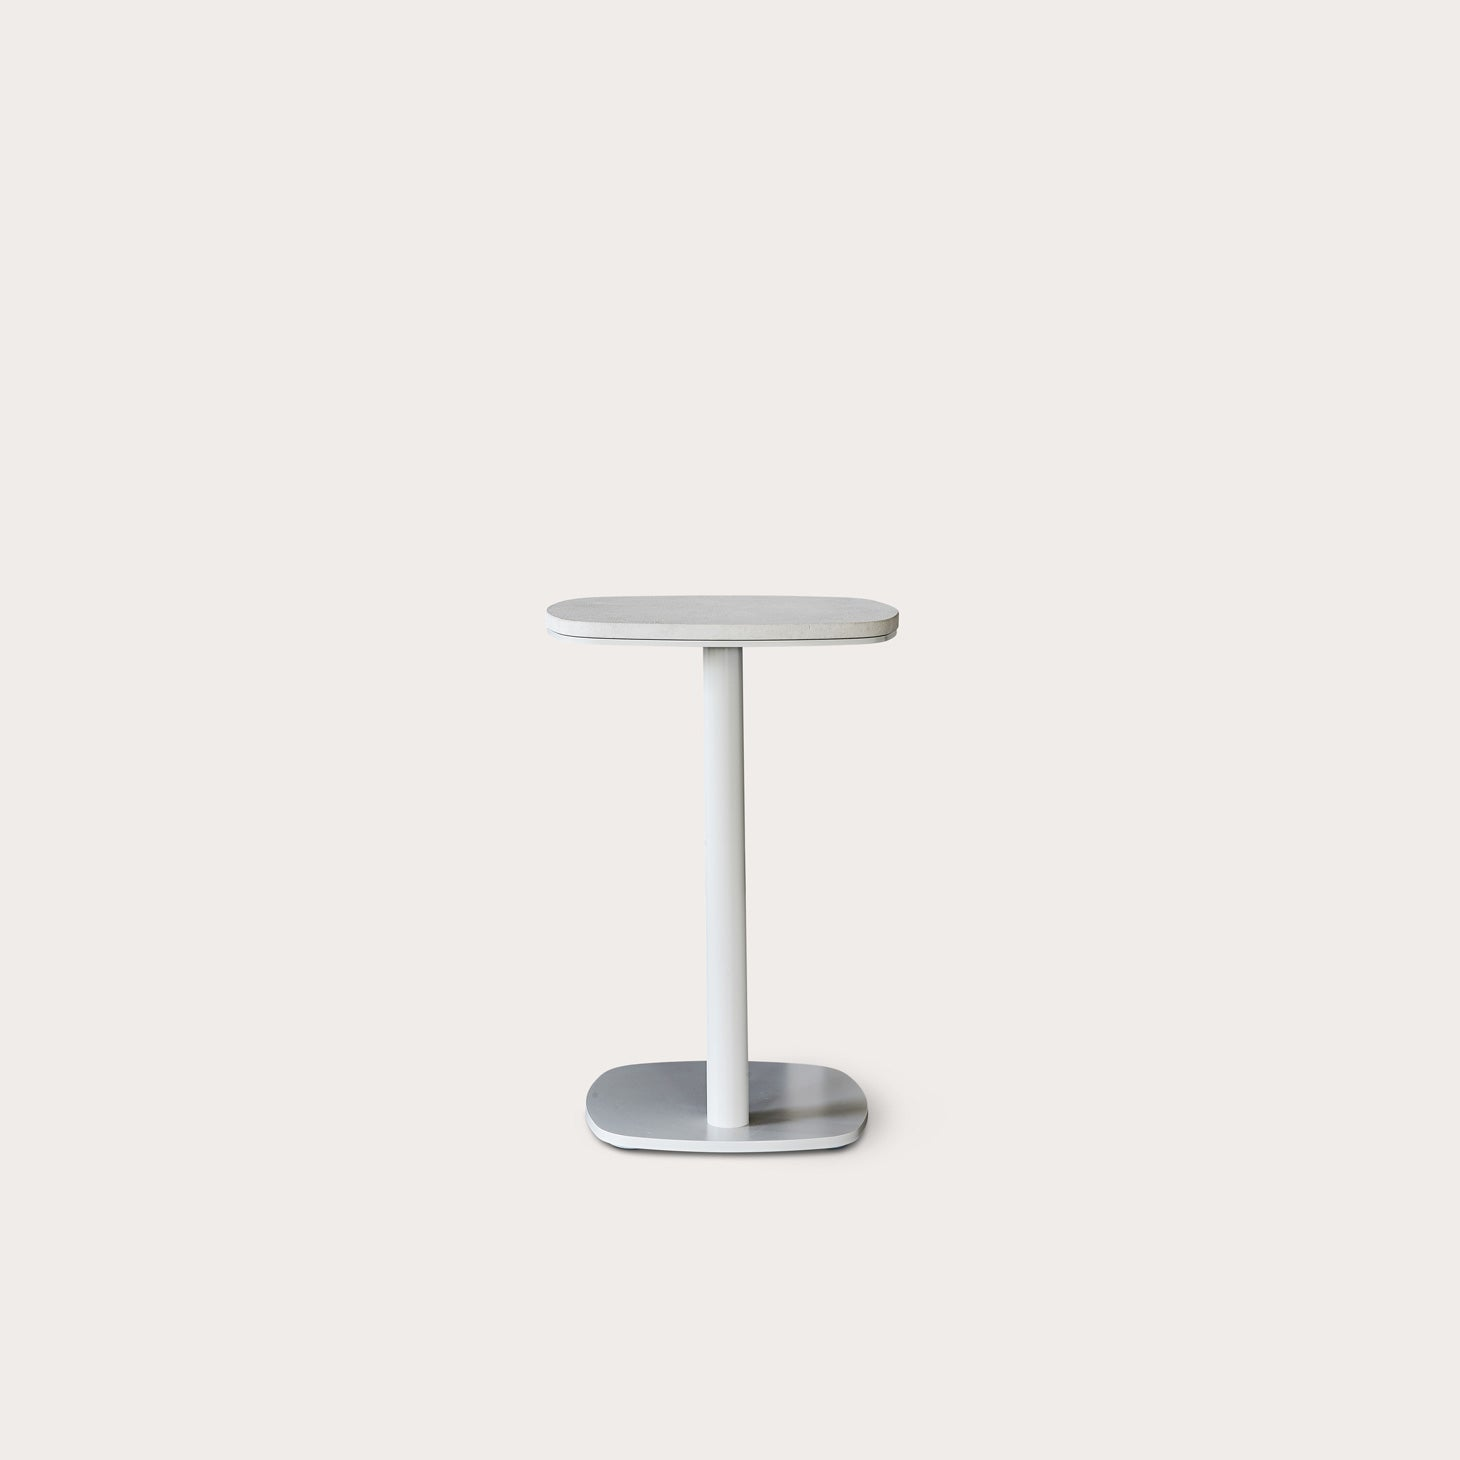 Kek Sidetable Tables Piet Boon Designer Furniture Sku: 784-230-10006